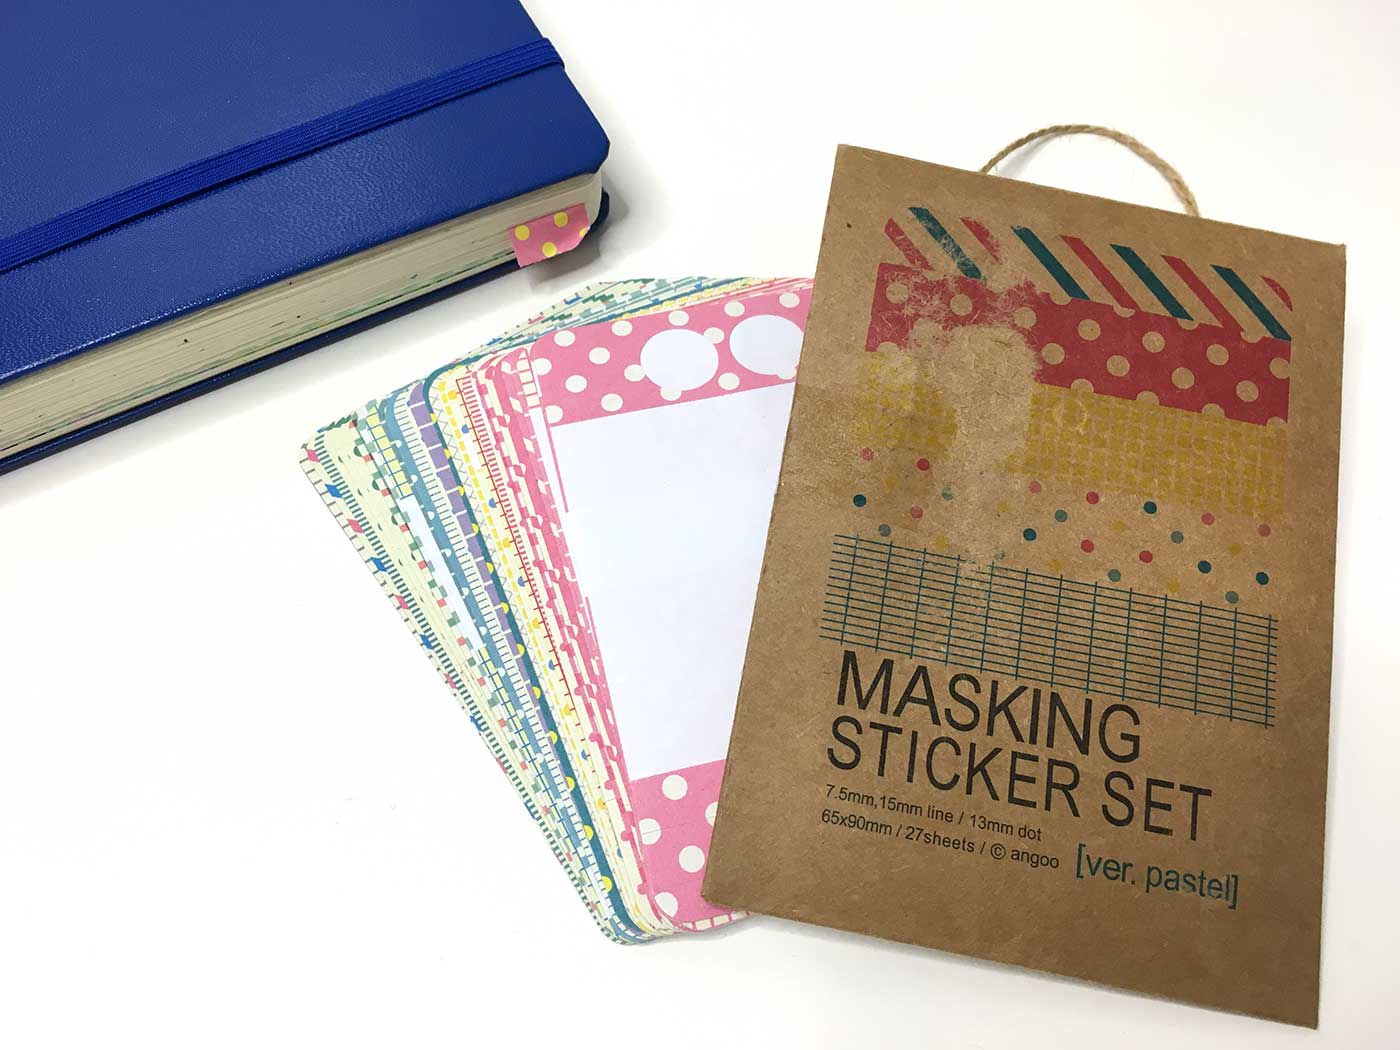 A masking sticker set helps keep you organized and highlight important notes in your bullet journal